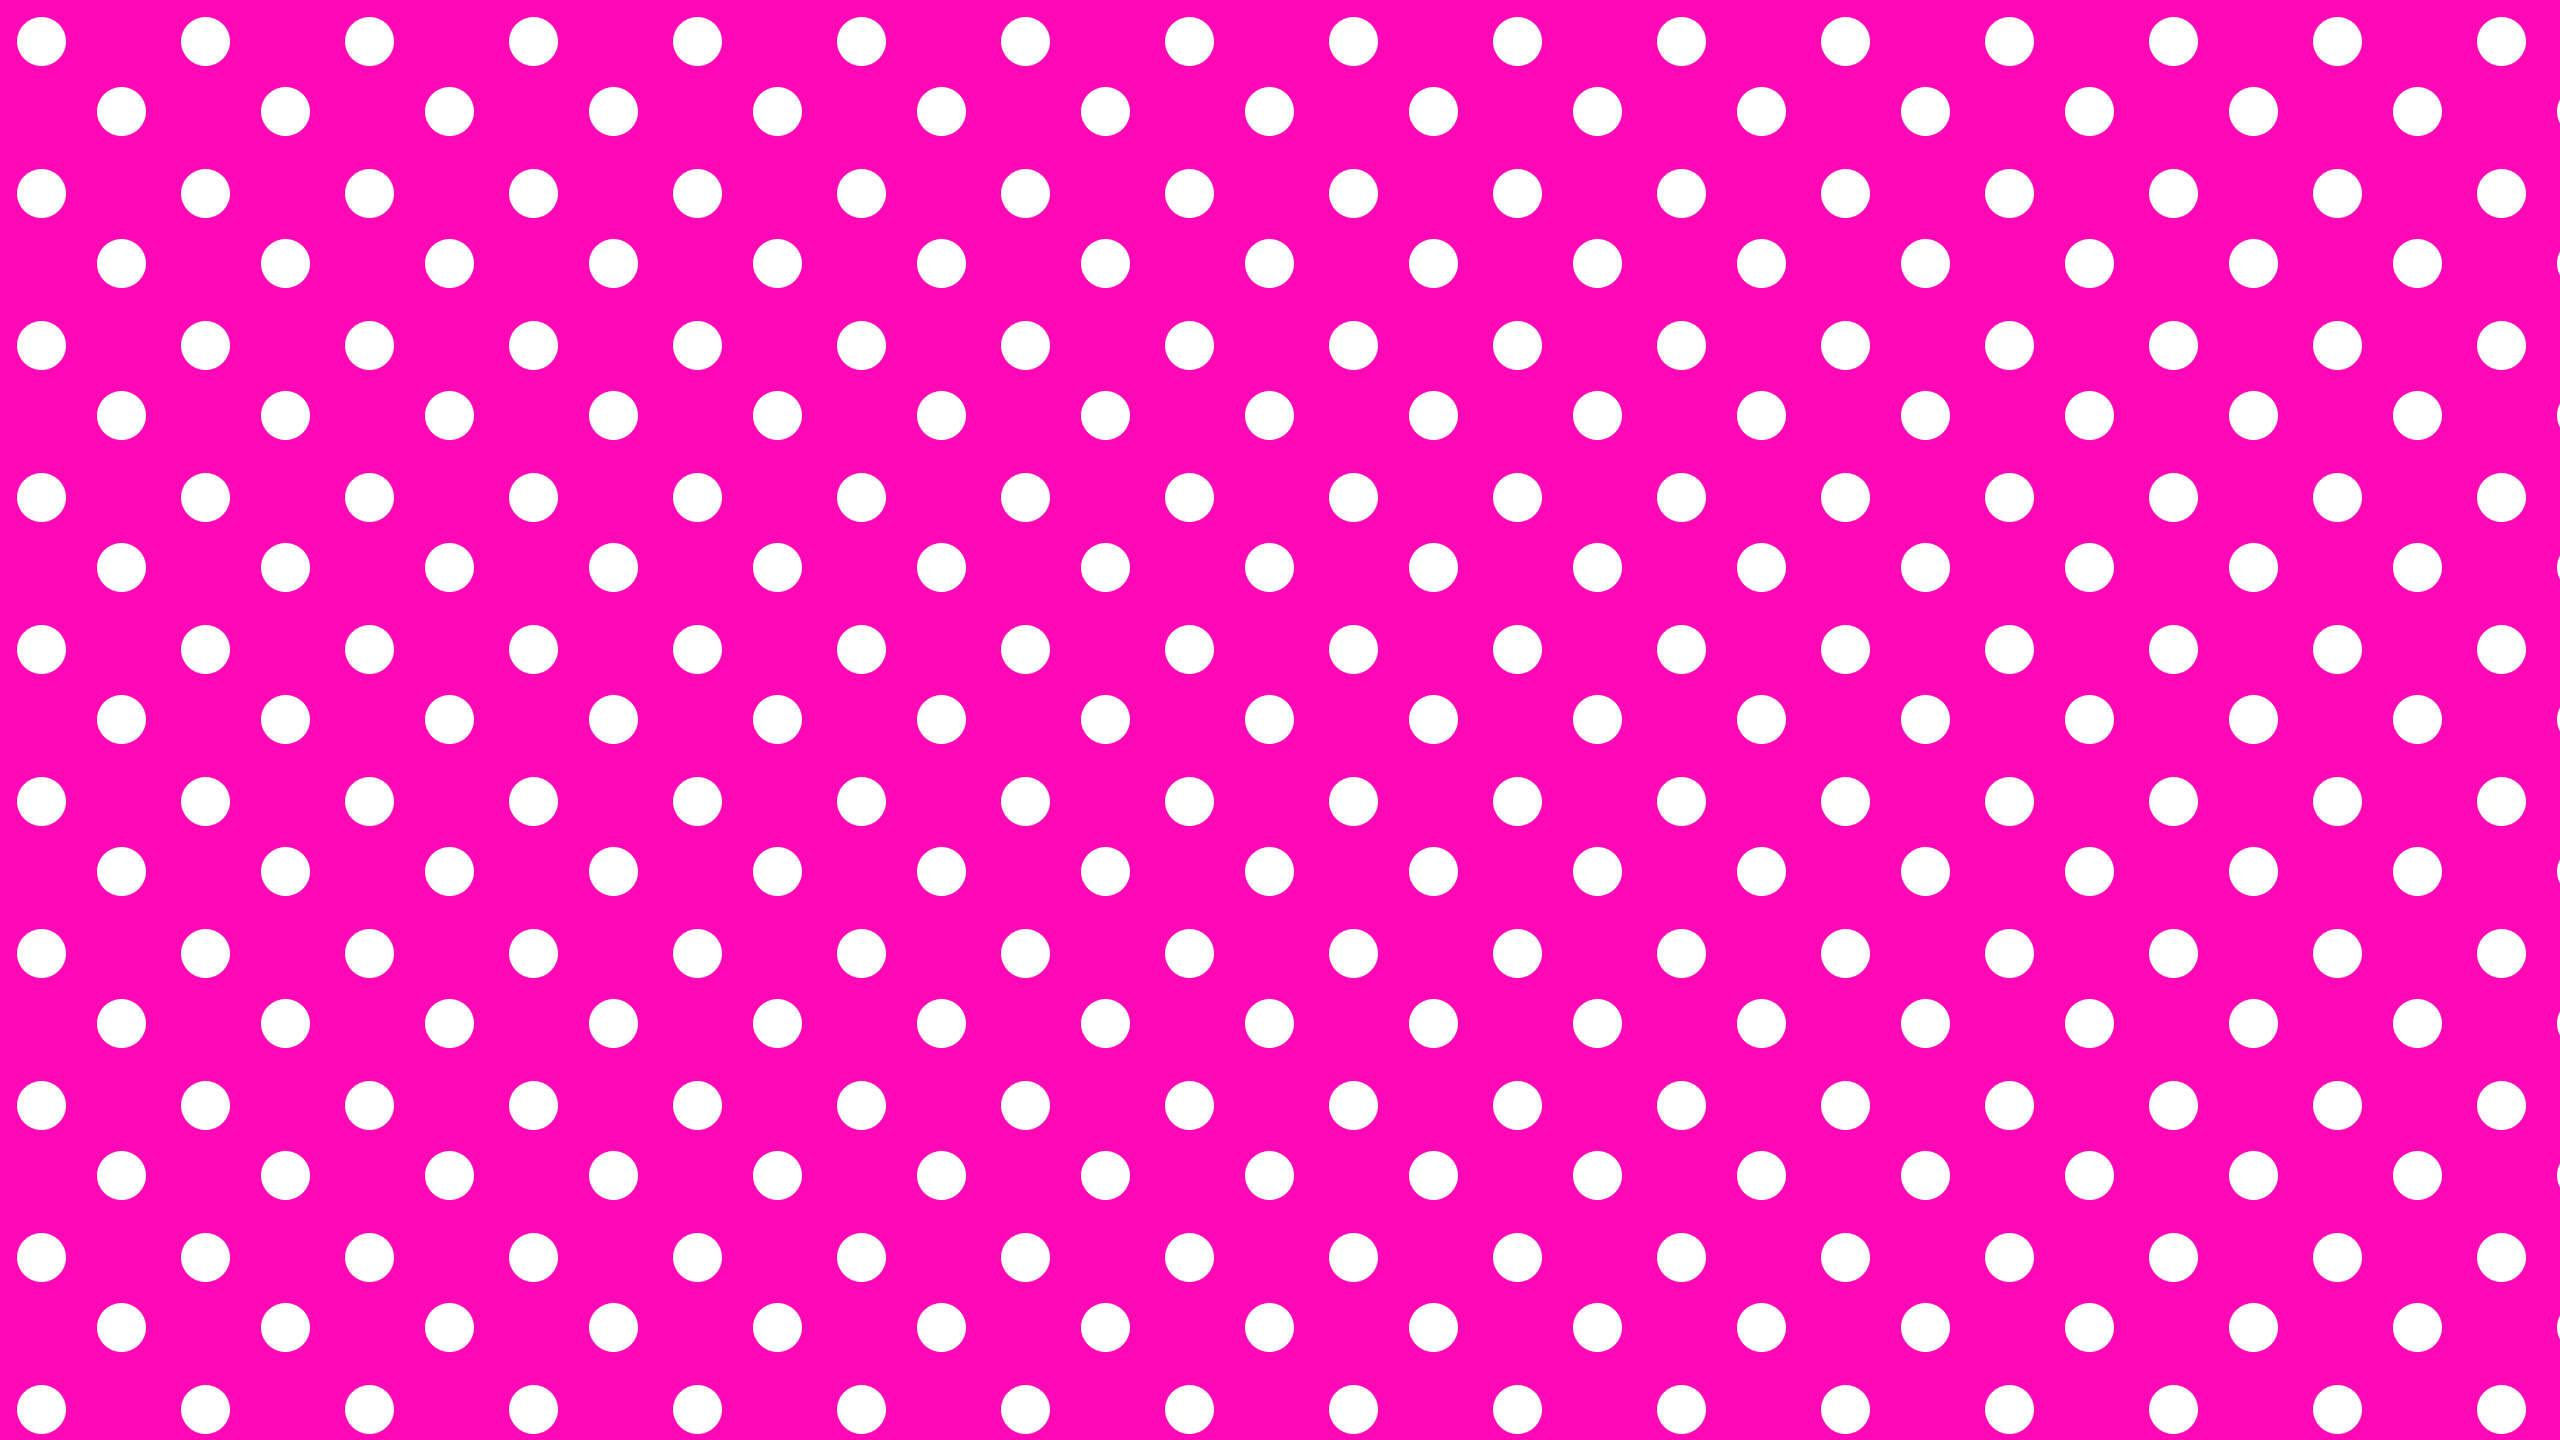 Light pink and white polka dot background